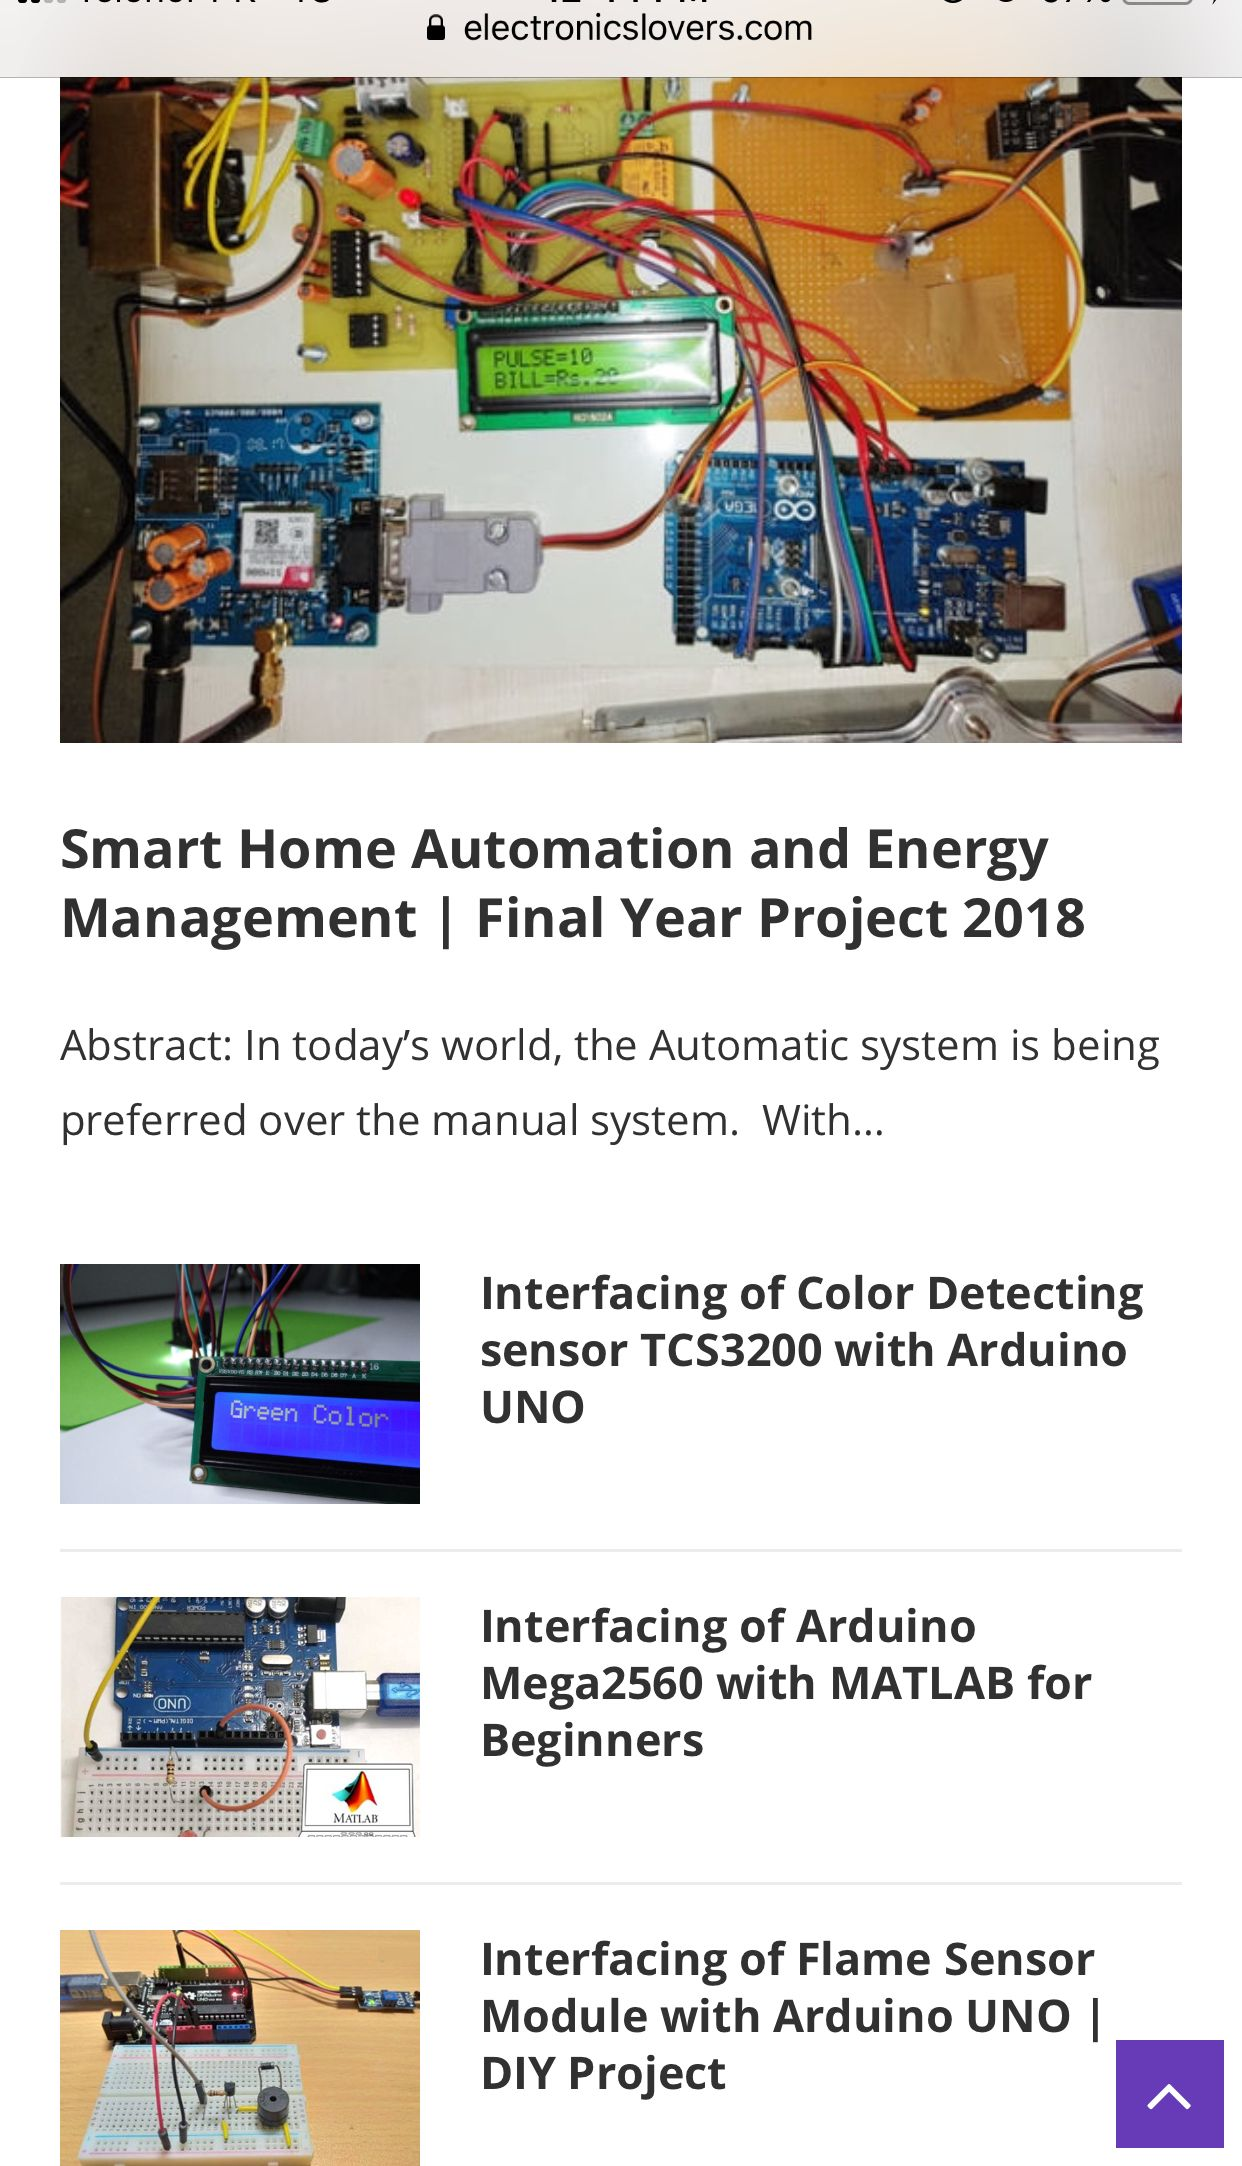 Arduino And Iot Based Projects Electronics Diy In 2018 For Dummies Engineering Project Electronic